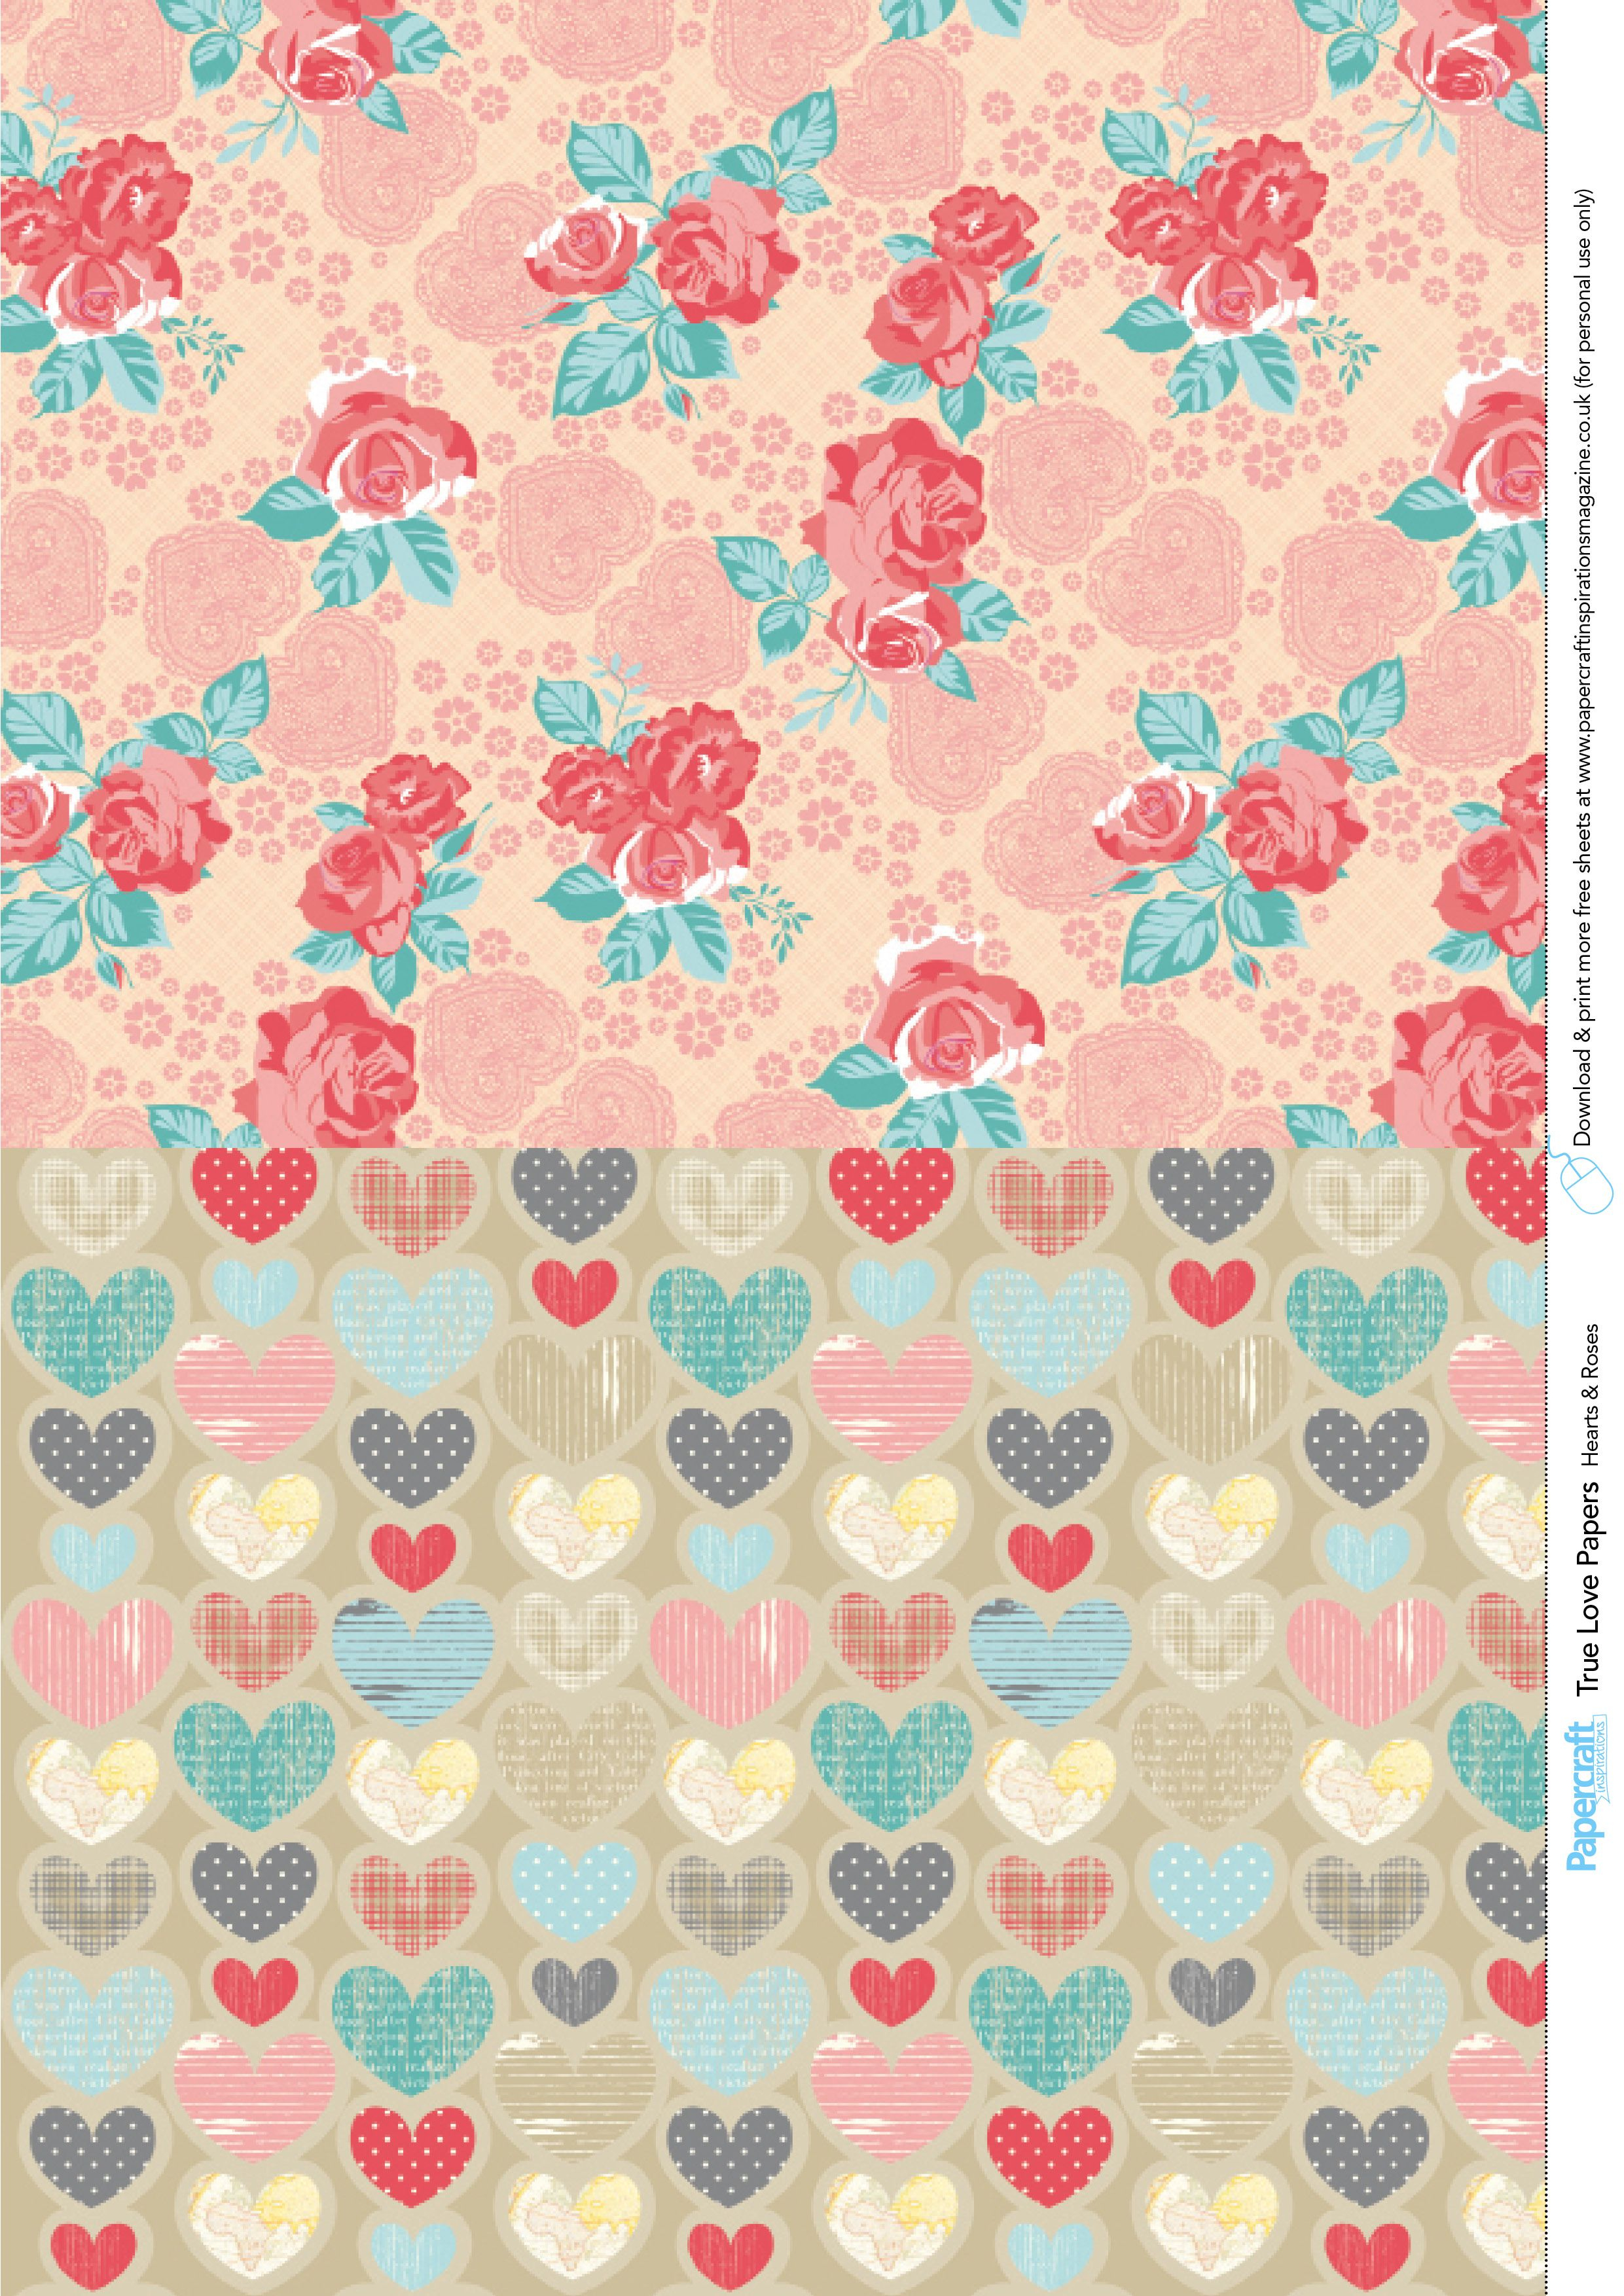 Valentine's Day Free Printable Papers   Free Printables   Digital - Free Printable Pattern Paper Sheets